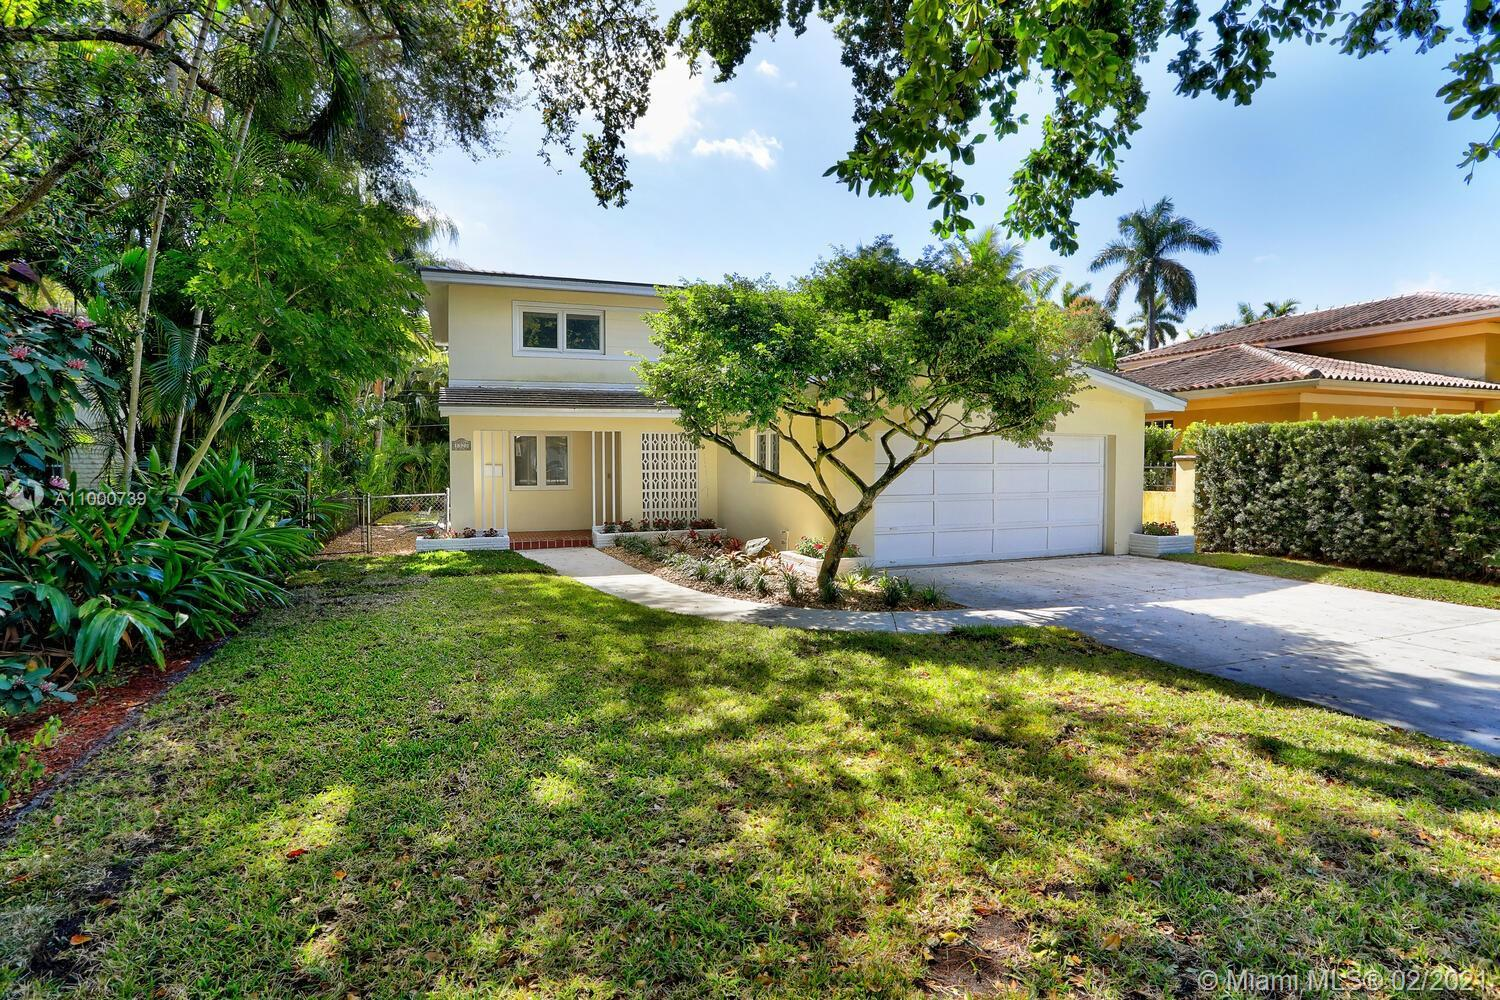 Wonderful home situated in the heart of Coral Gables! This 4 BR/3 BA 2-story home has been recently